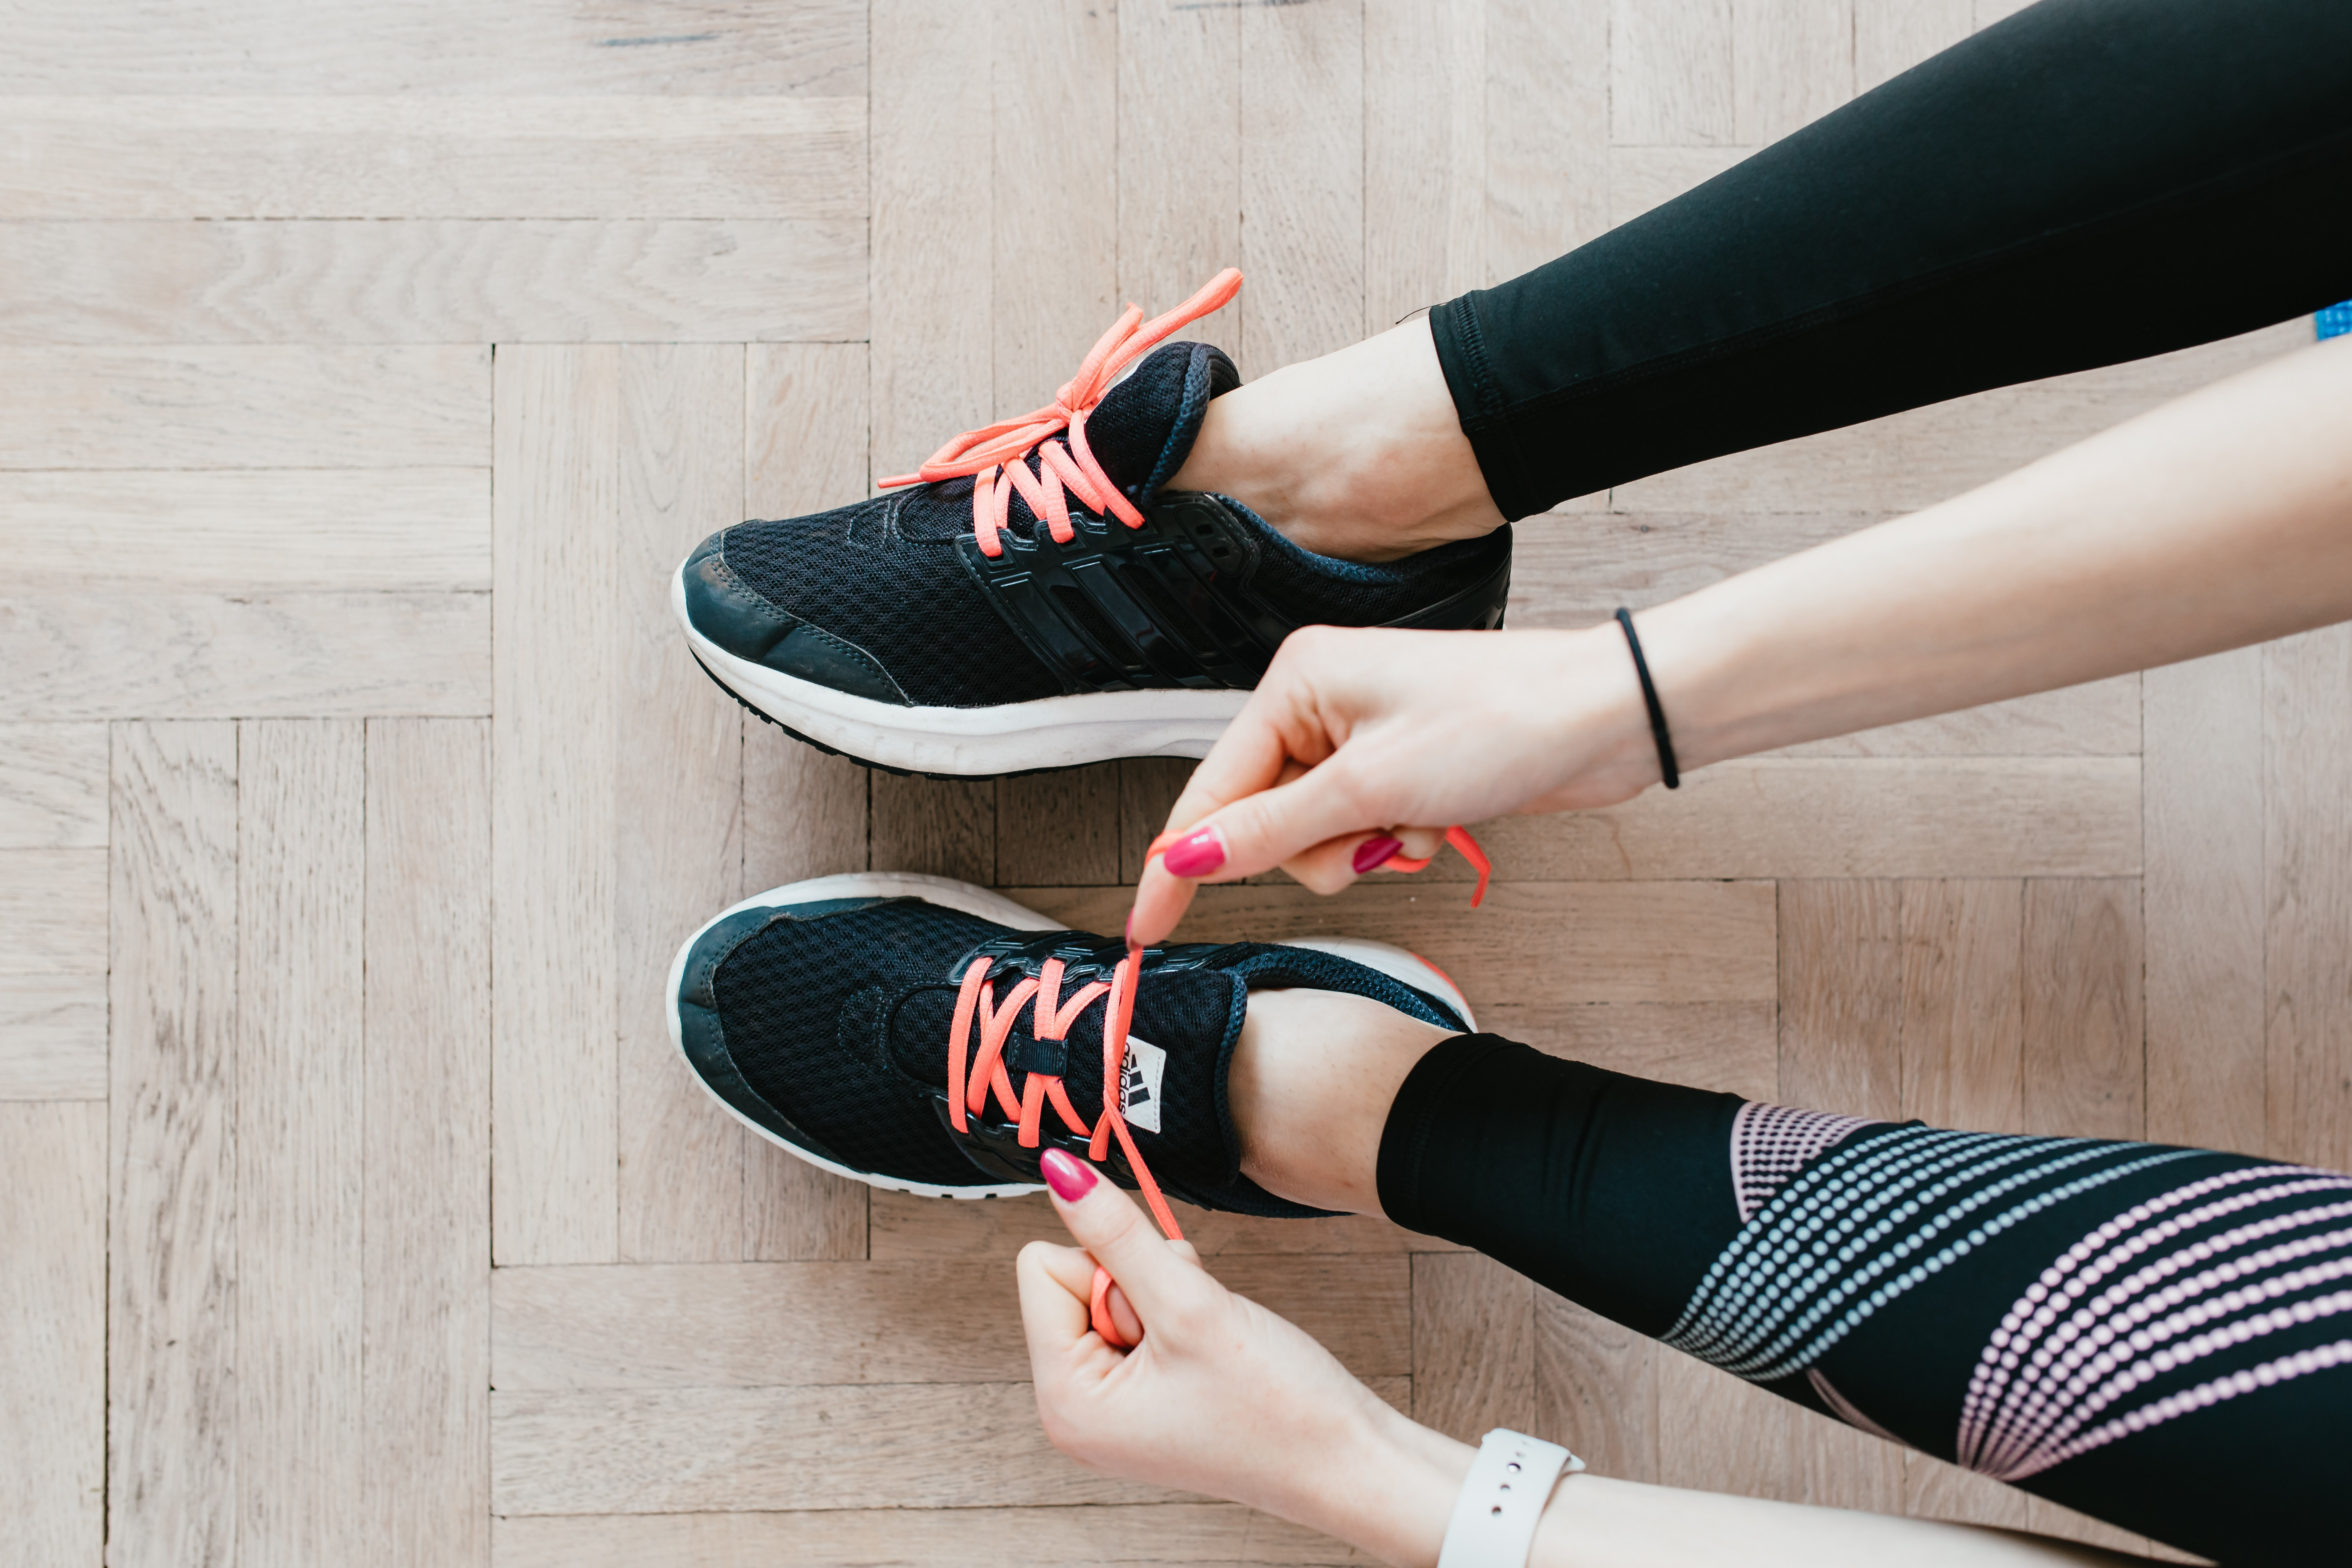 fast weight loss exercise at home - young-sportswoman-tying-sneakers-on-floor